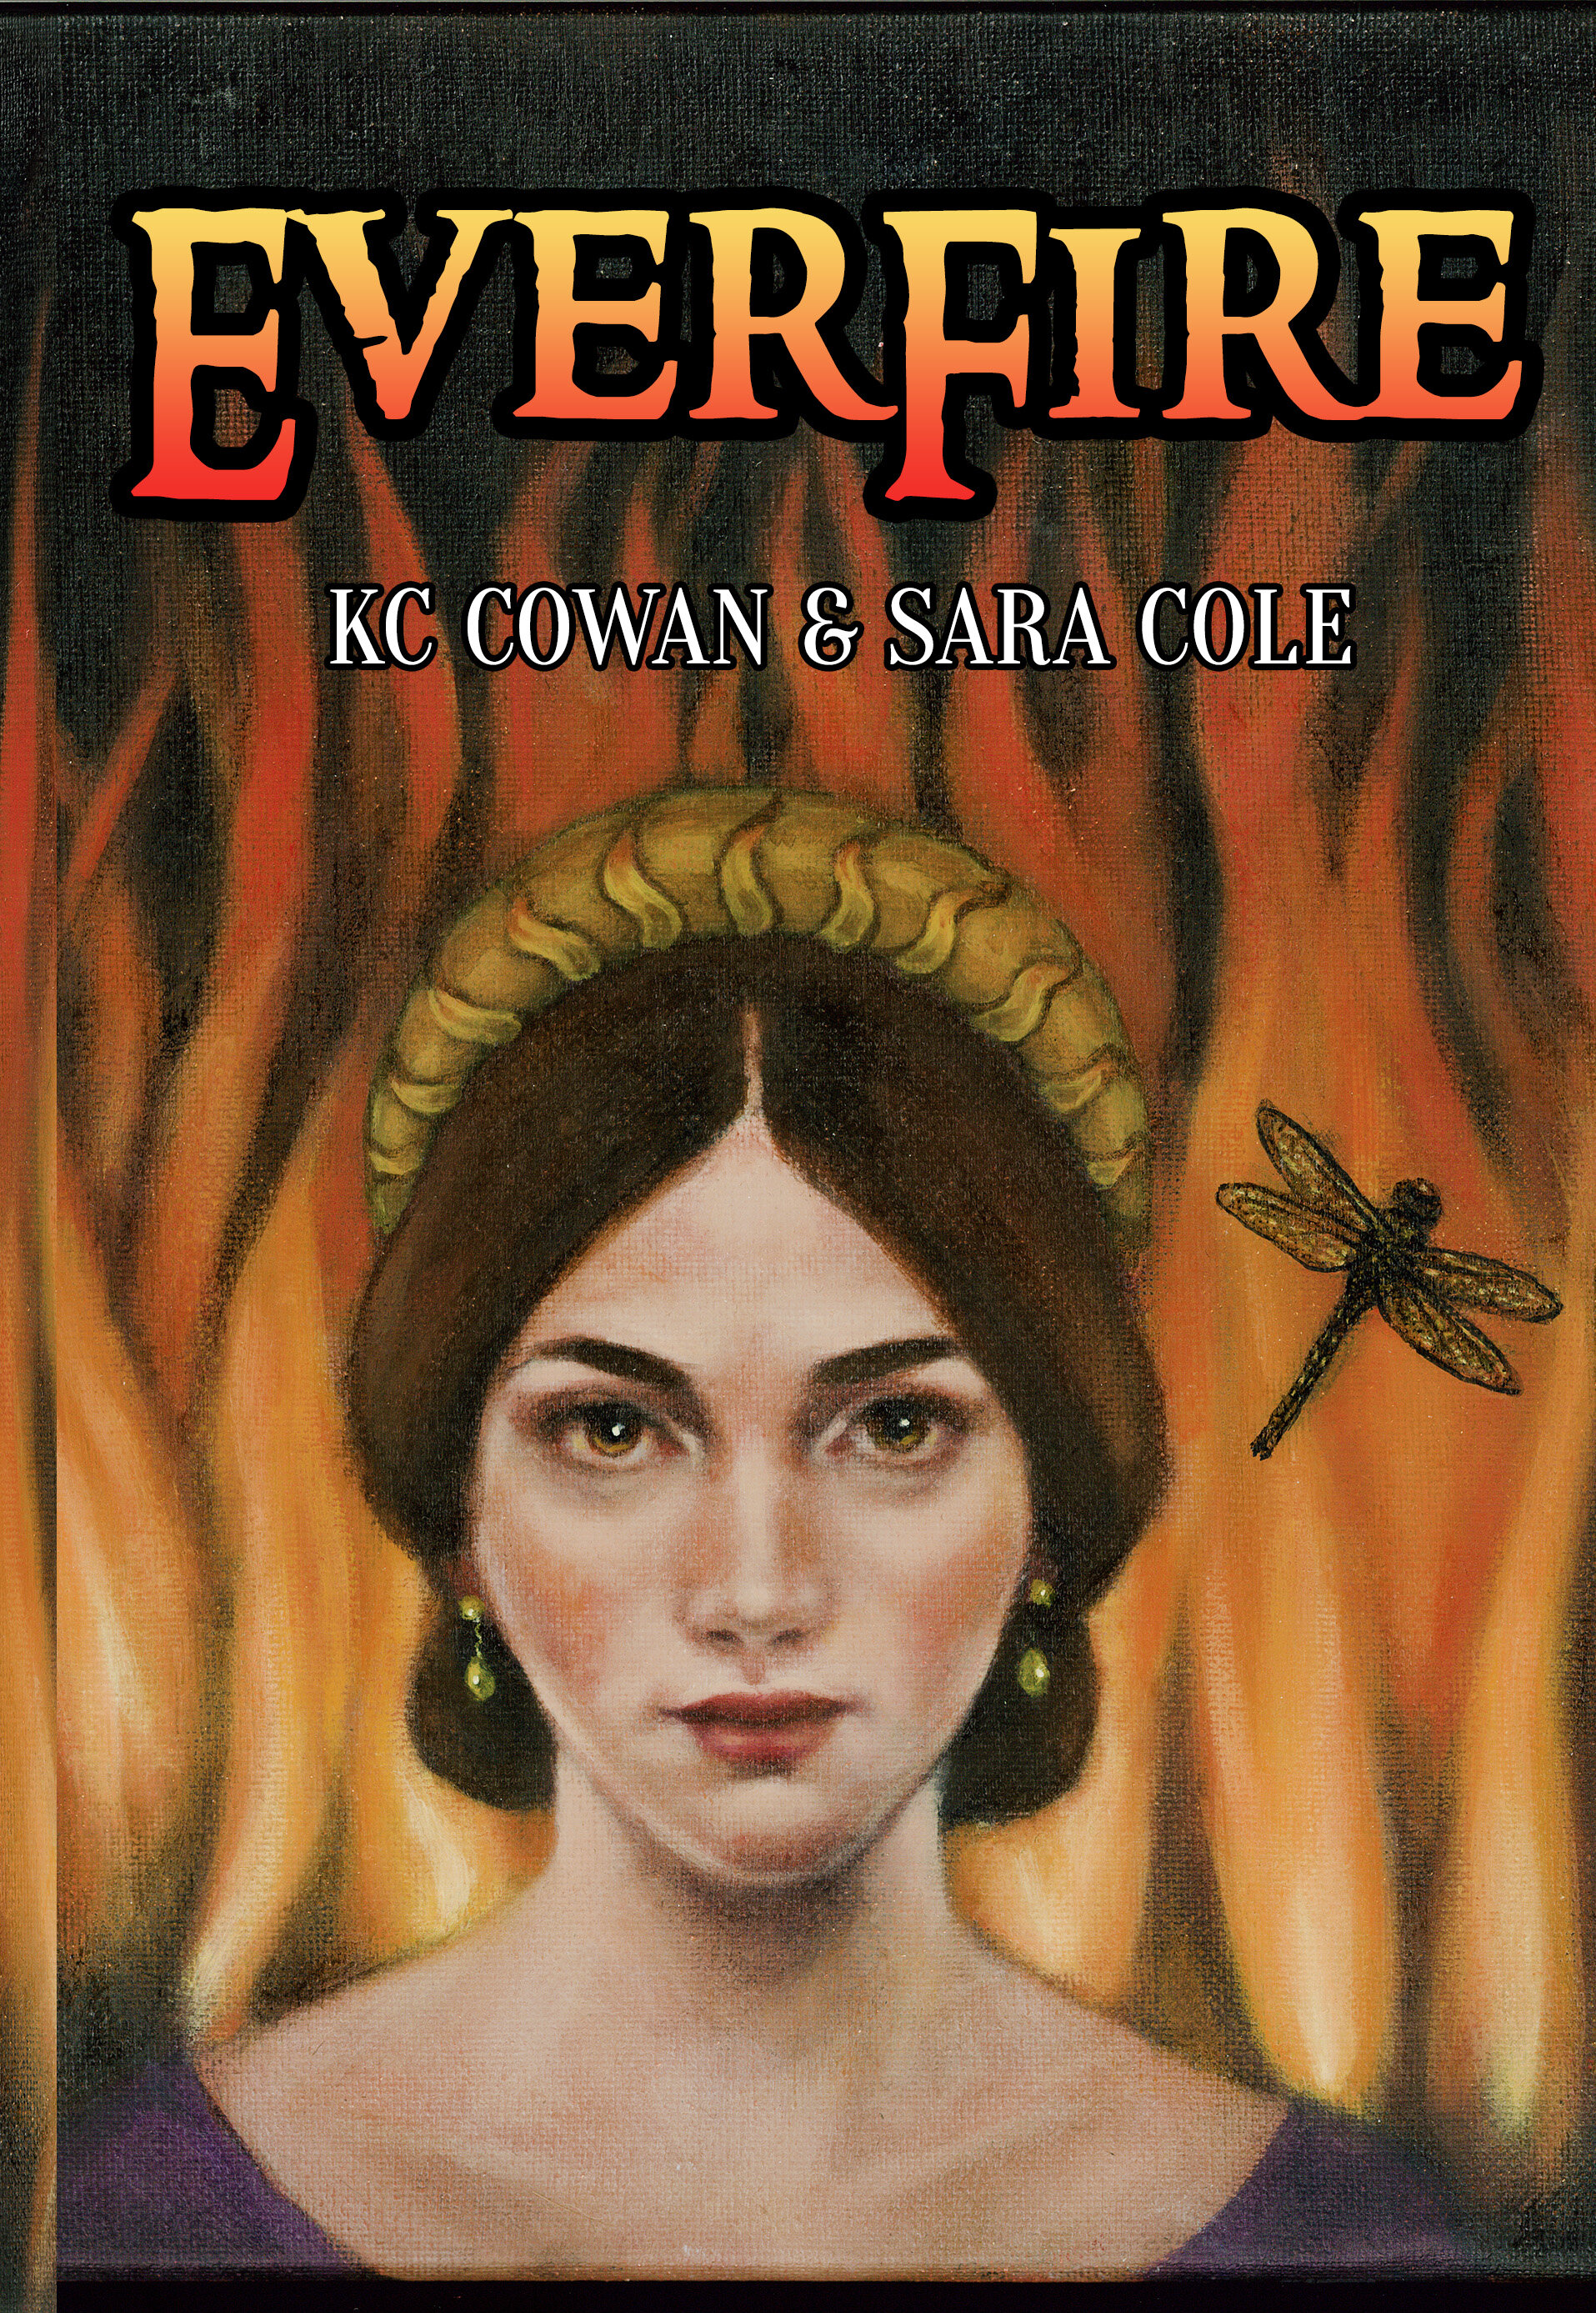 EVERFIRE is the third book in the Irene, Nan & Kay series